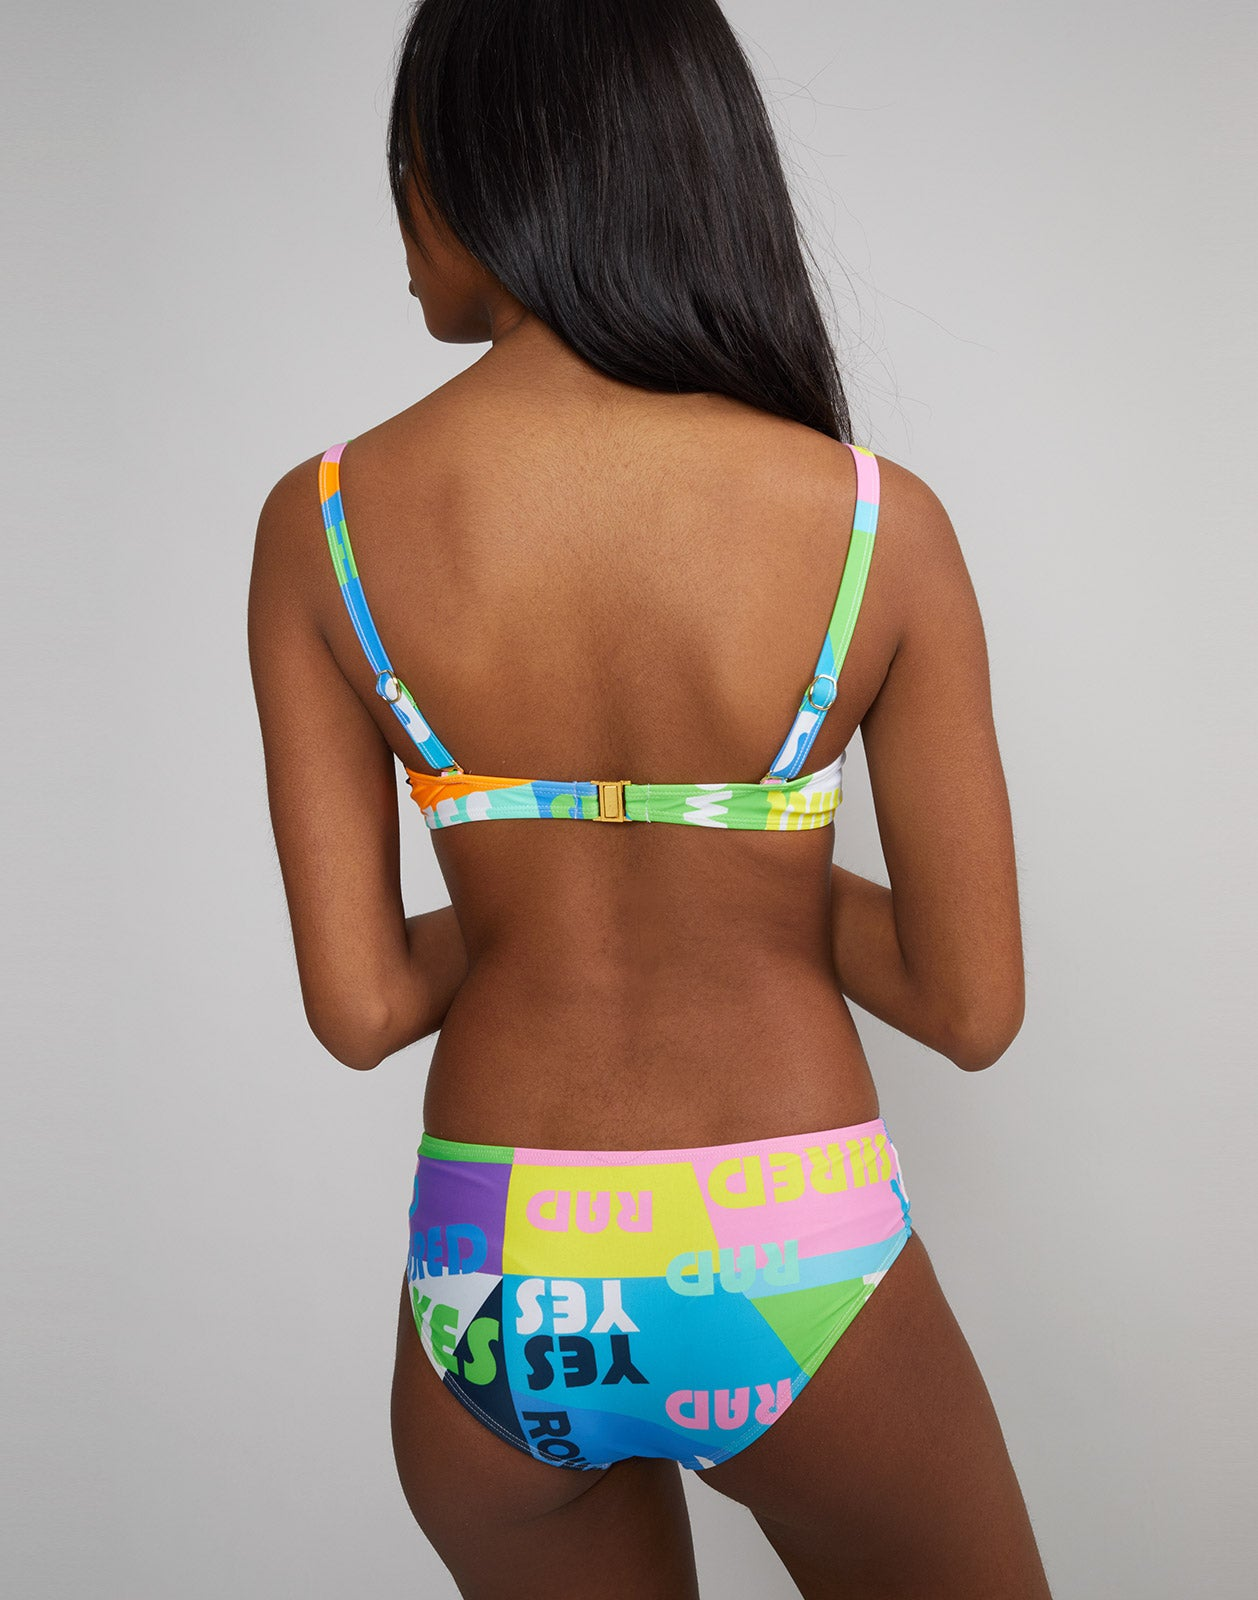 Back view of bikini top in good vibes print with underwire